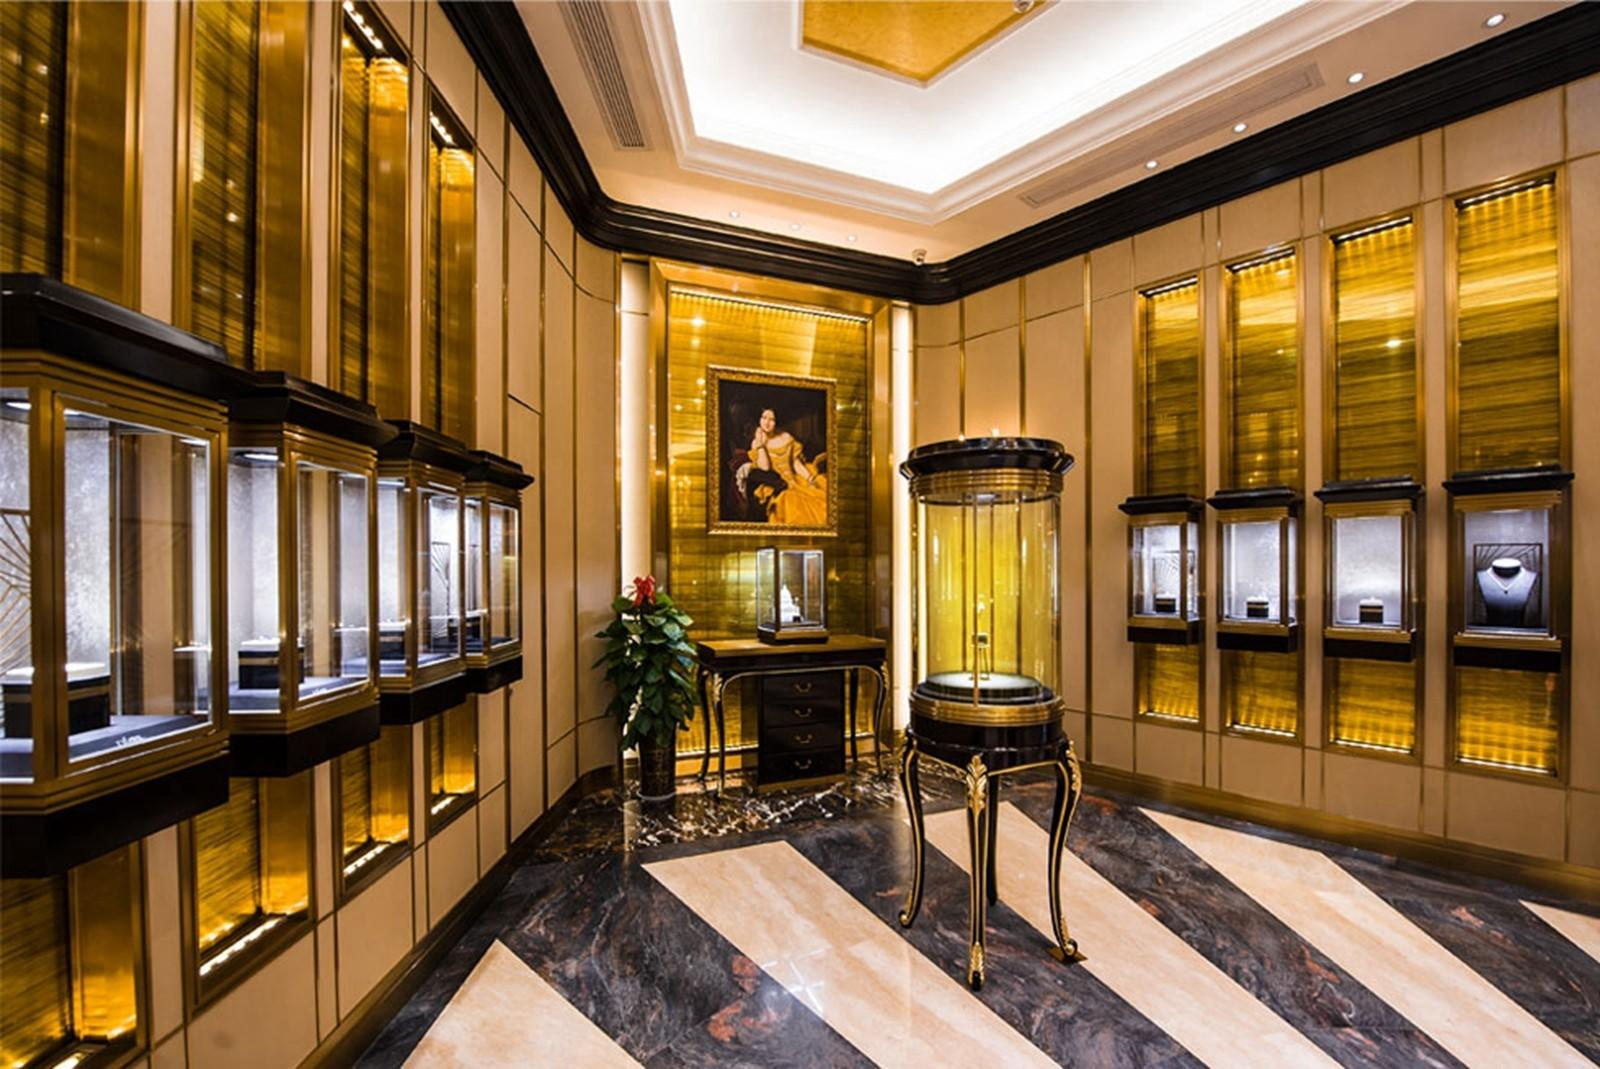 Wood jewelry displaylatest jewellery showroom design has virtues such as interior design ideas jewellery shops high stability long life and low cost